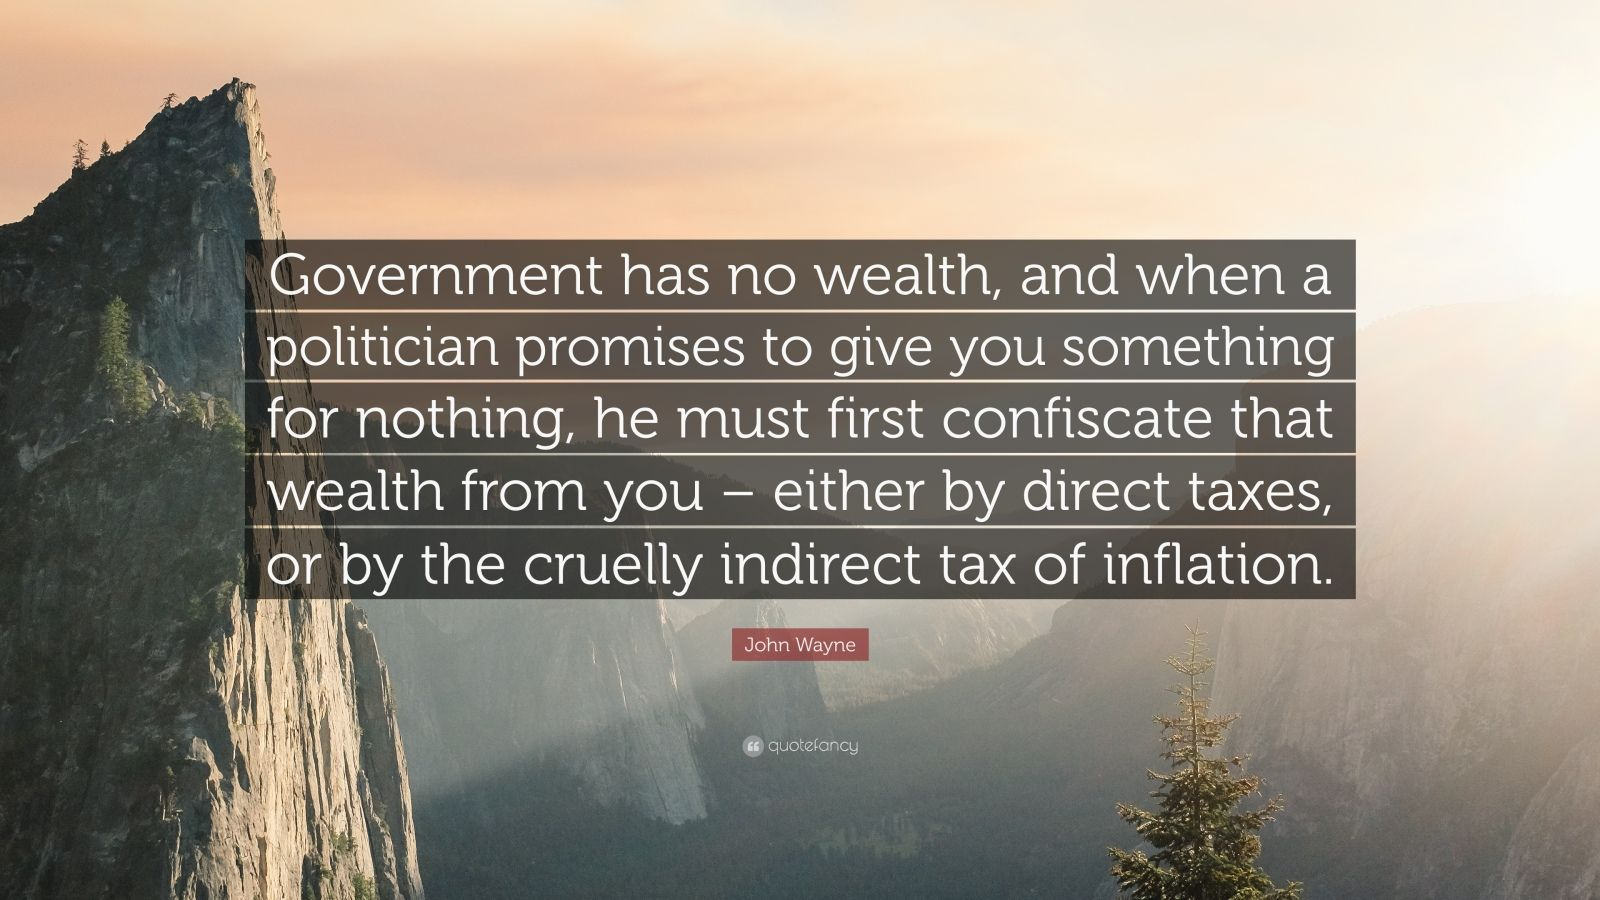 """John Wayne Quote: """"Government has no wealth, and when a politician promises to give you something for nothing, he must first confiscate that wealth from you – either by direct taxes, or by the cruelly indirect tax of inflation."""""""